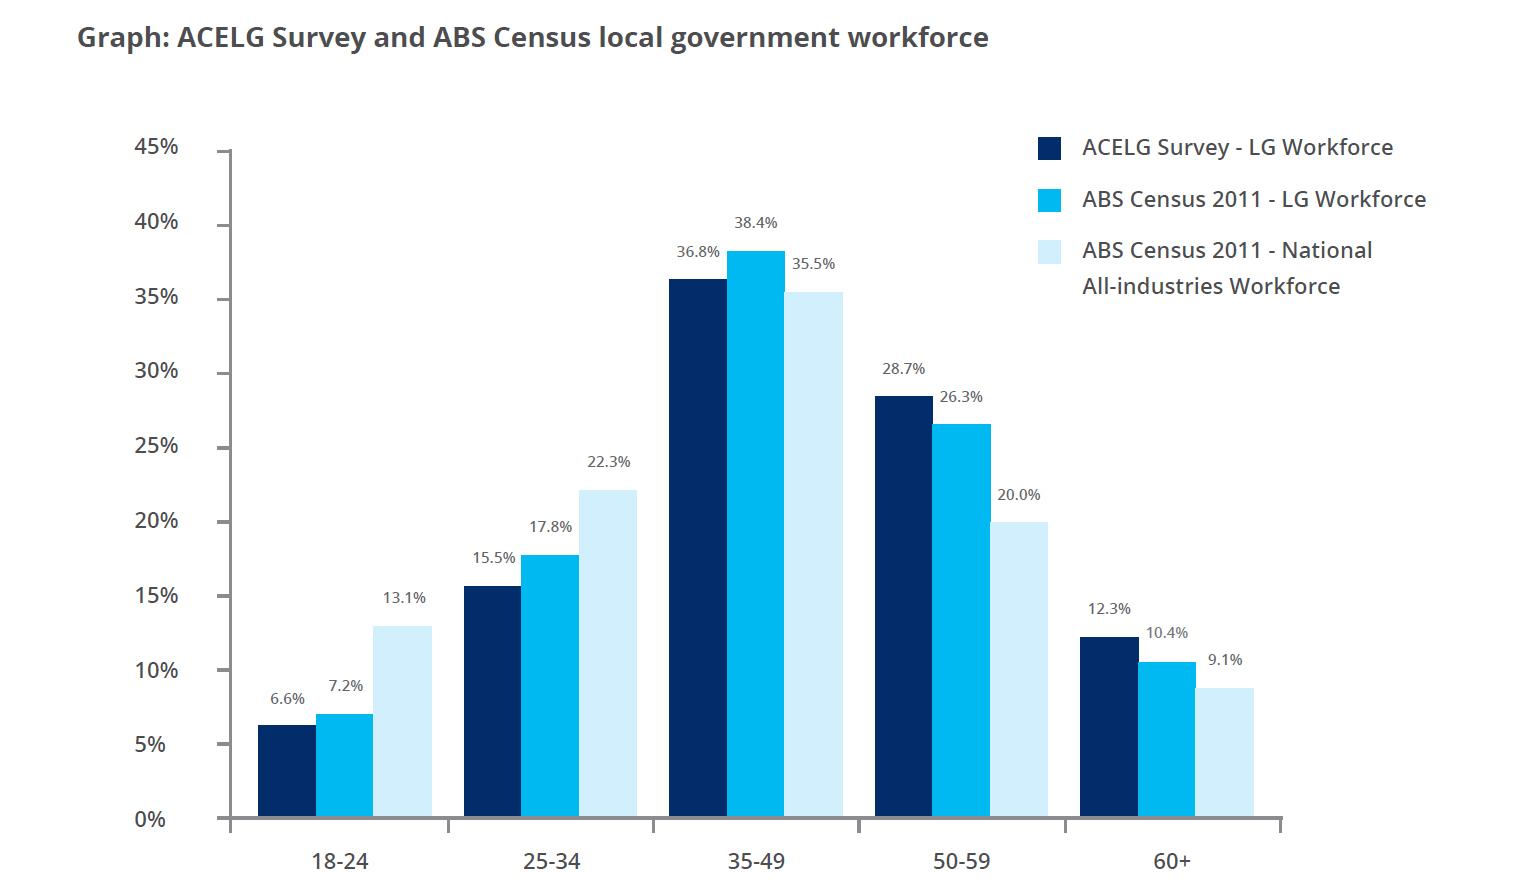 ACELG Survey and ABS Census local government workforce